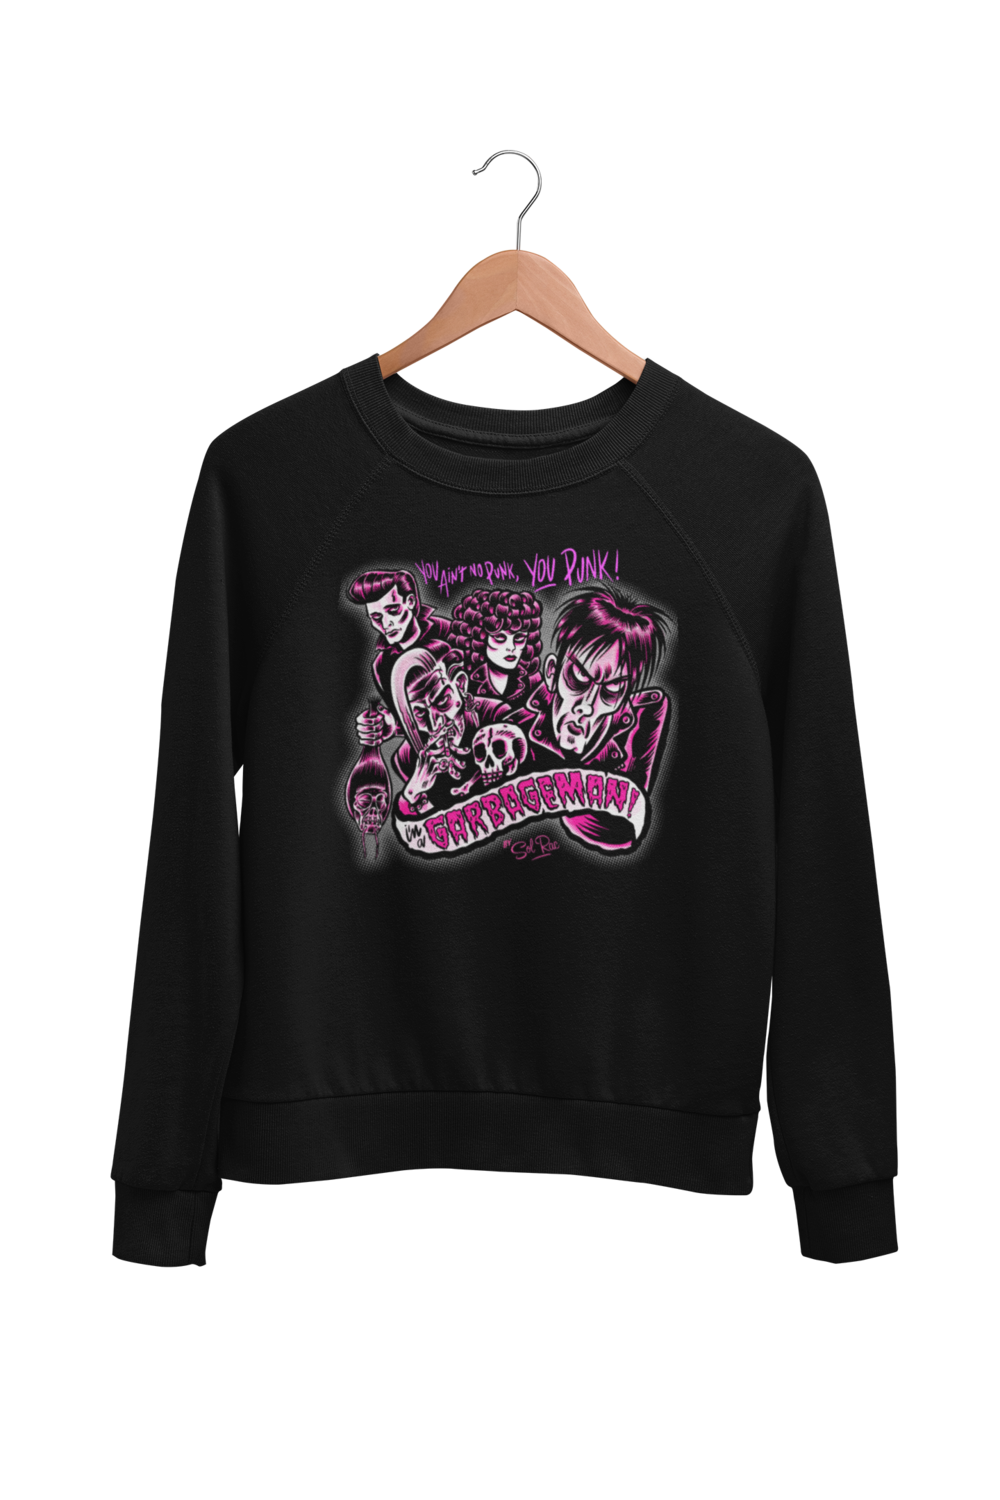 GARBAGE MAN SWEATSHIRT UNISEX by BY SOL RAC